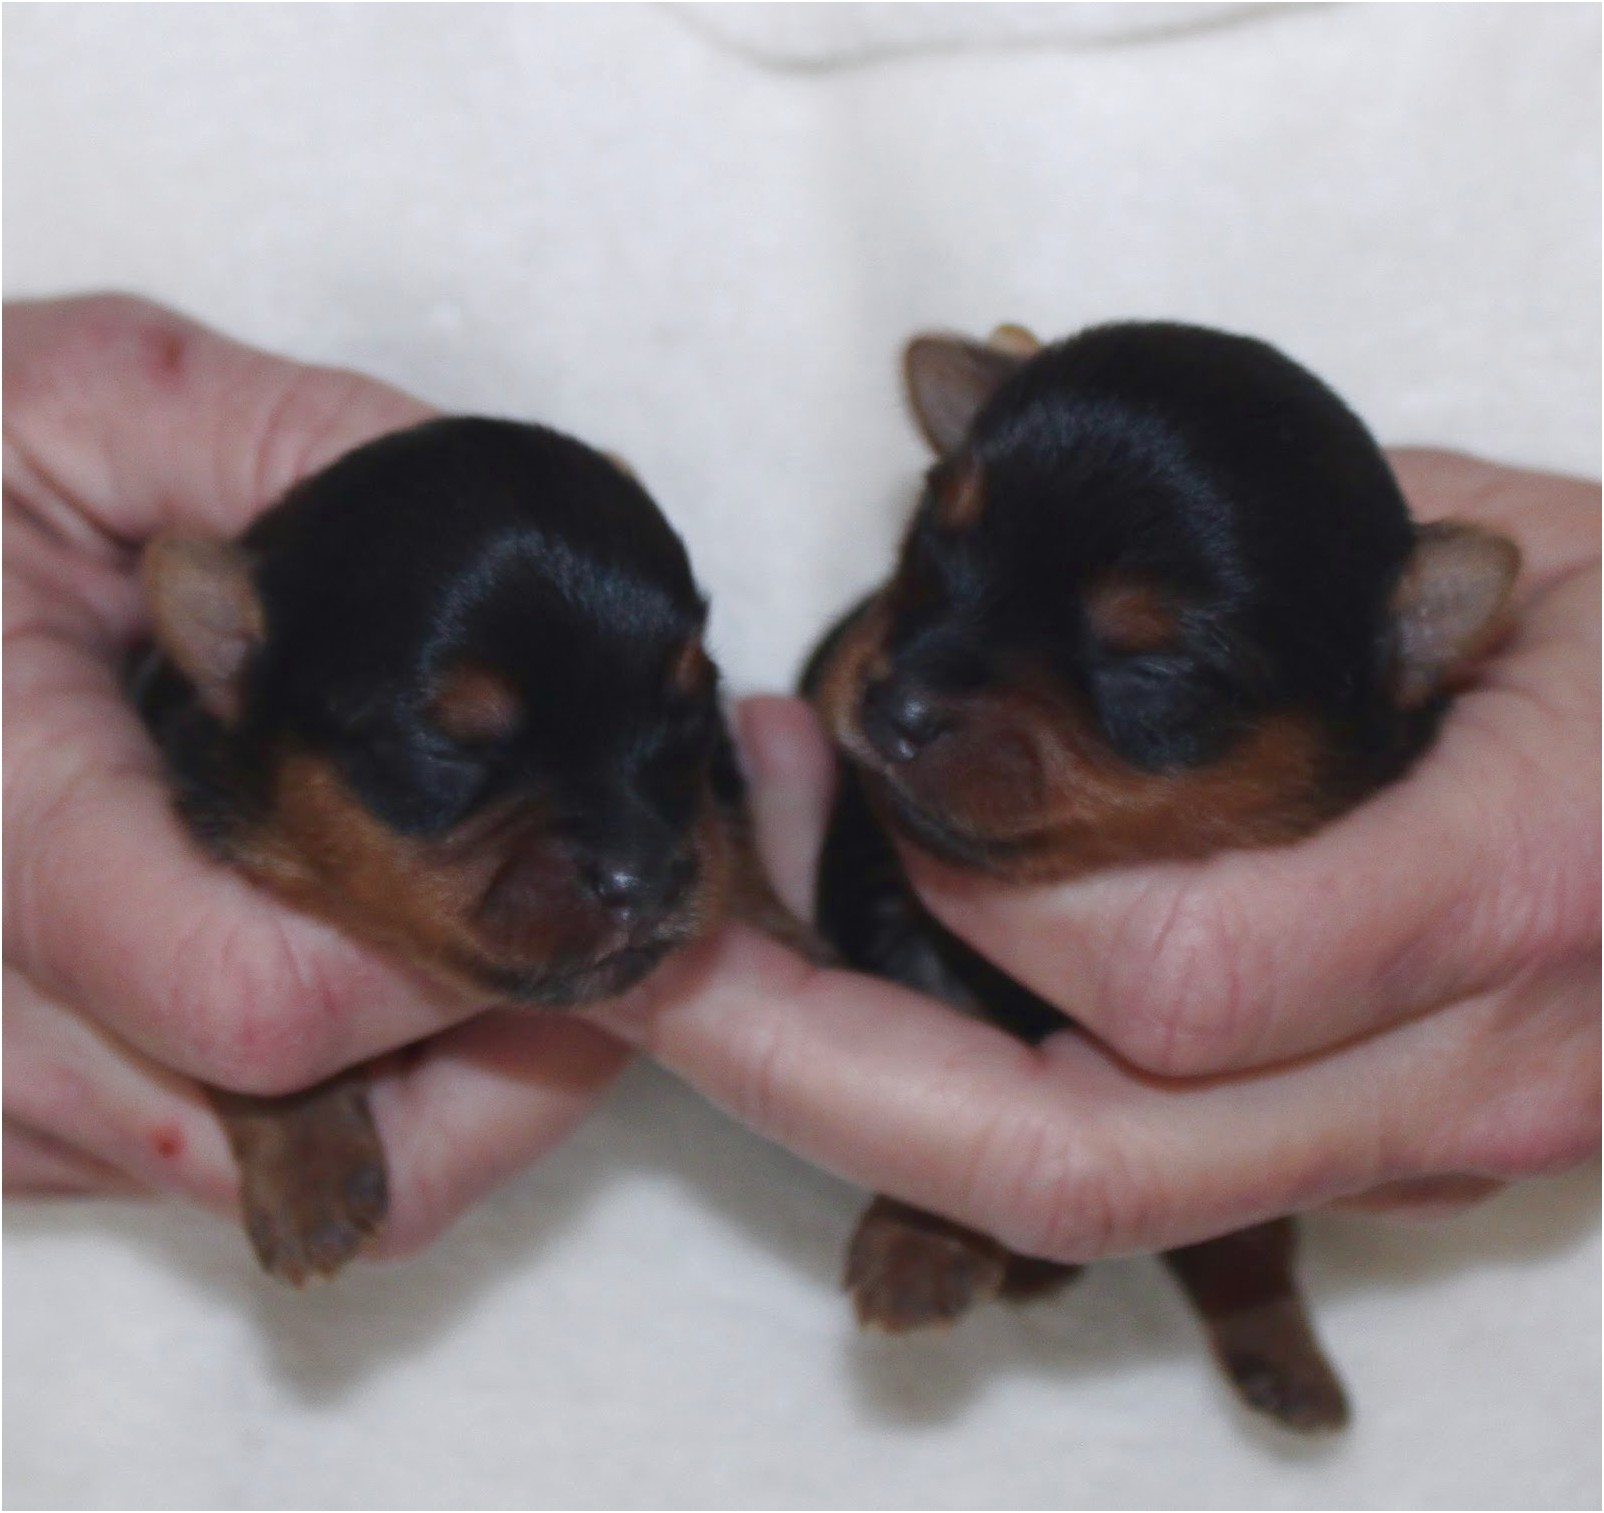 yorkshire terrier puppies for sale hampshire